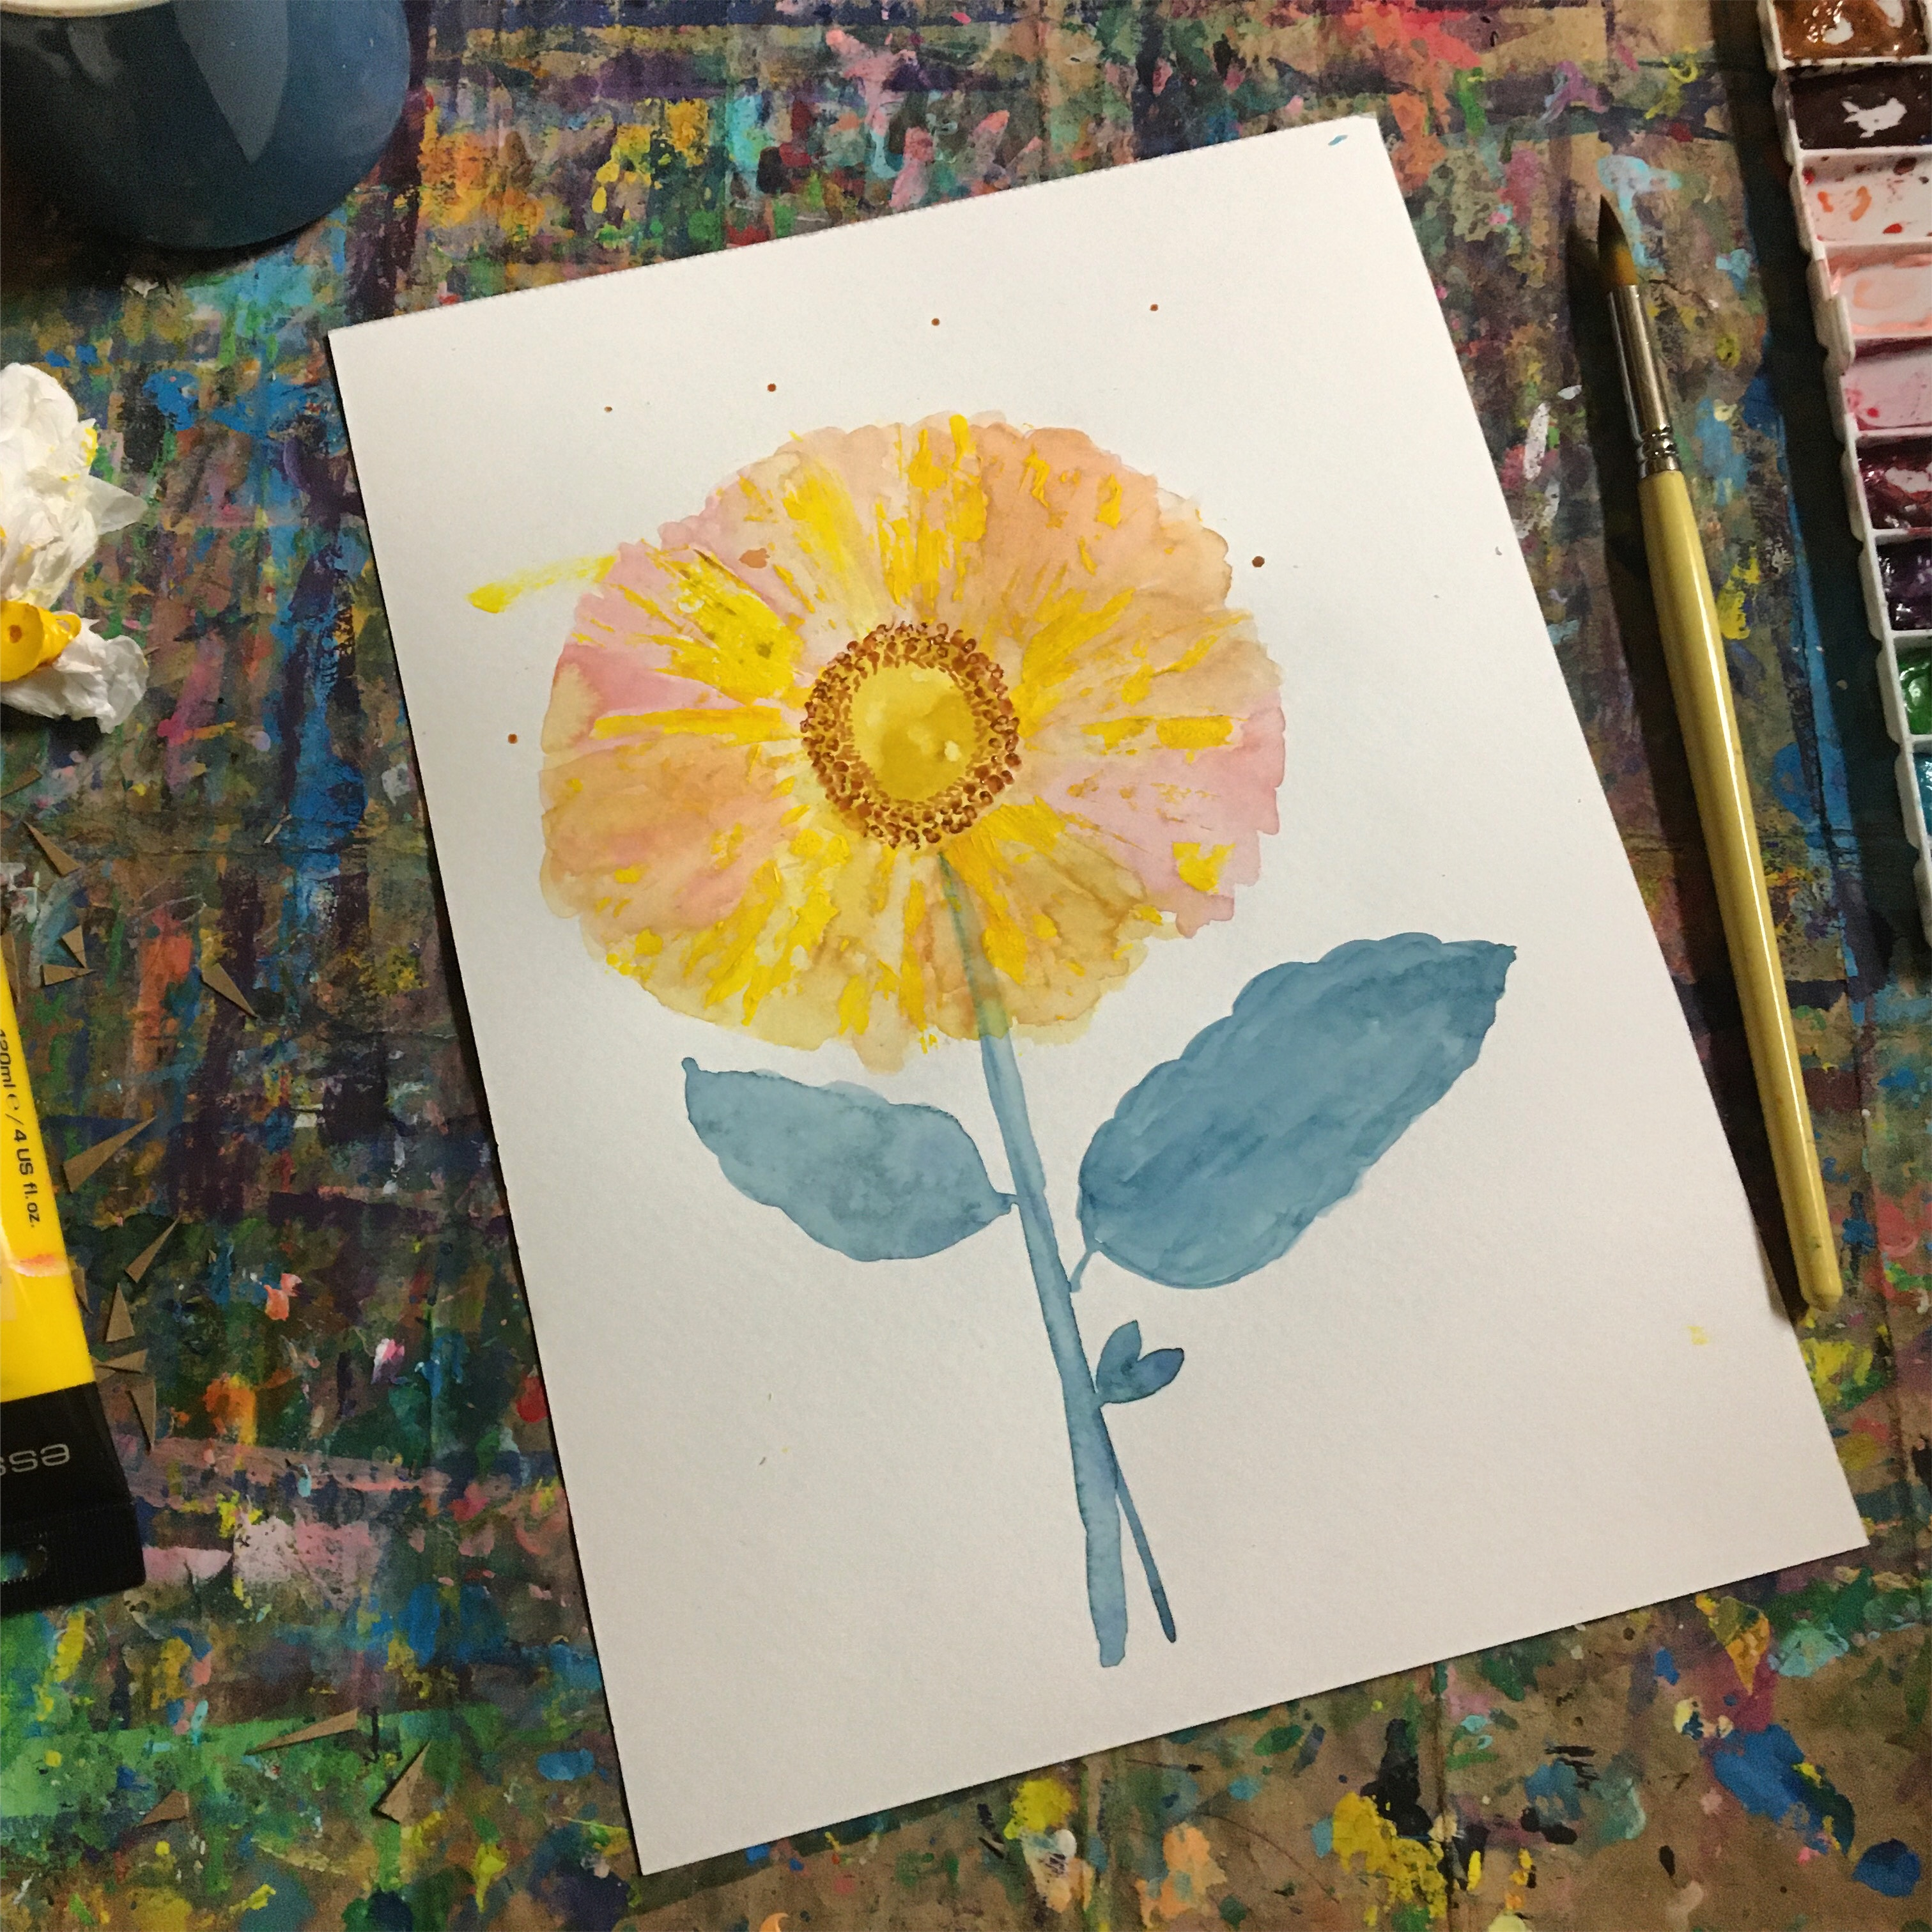 learning to paint flowers with fun tools